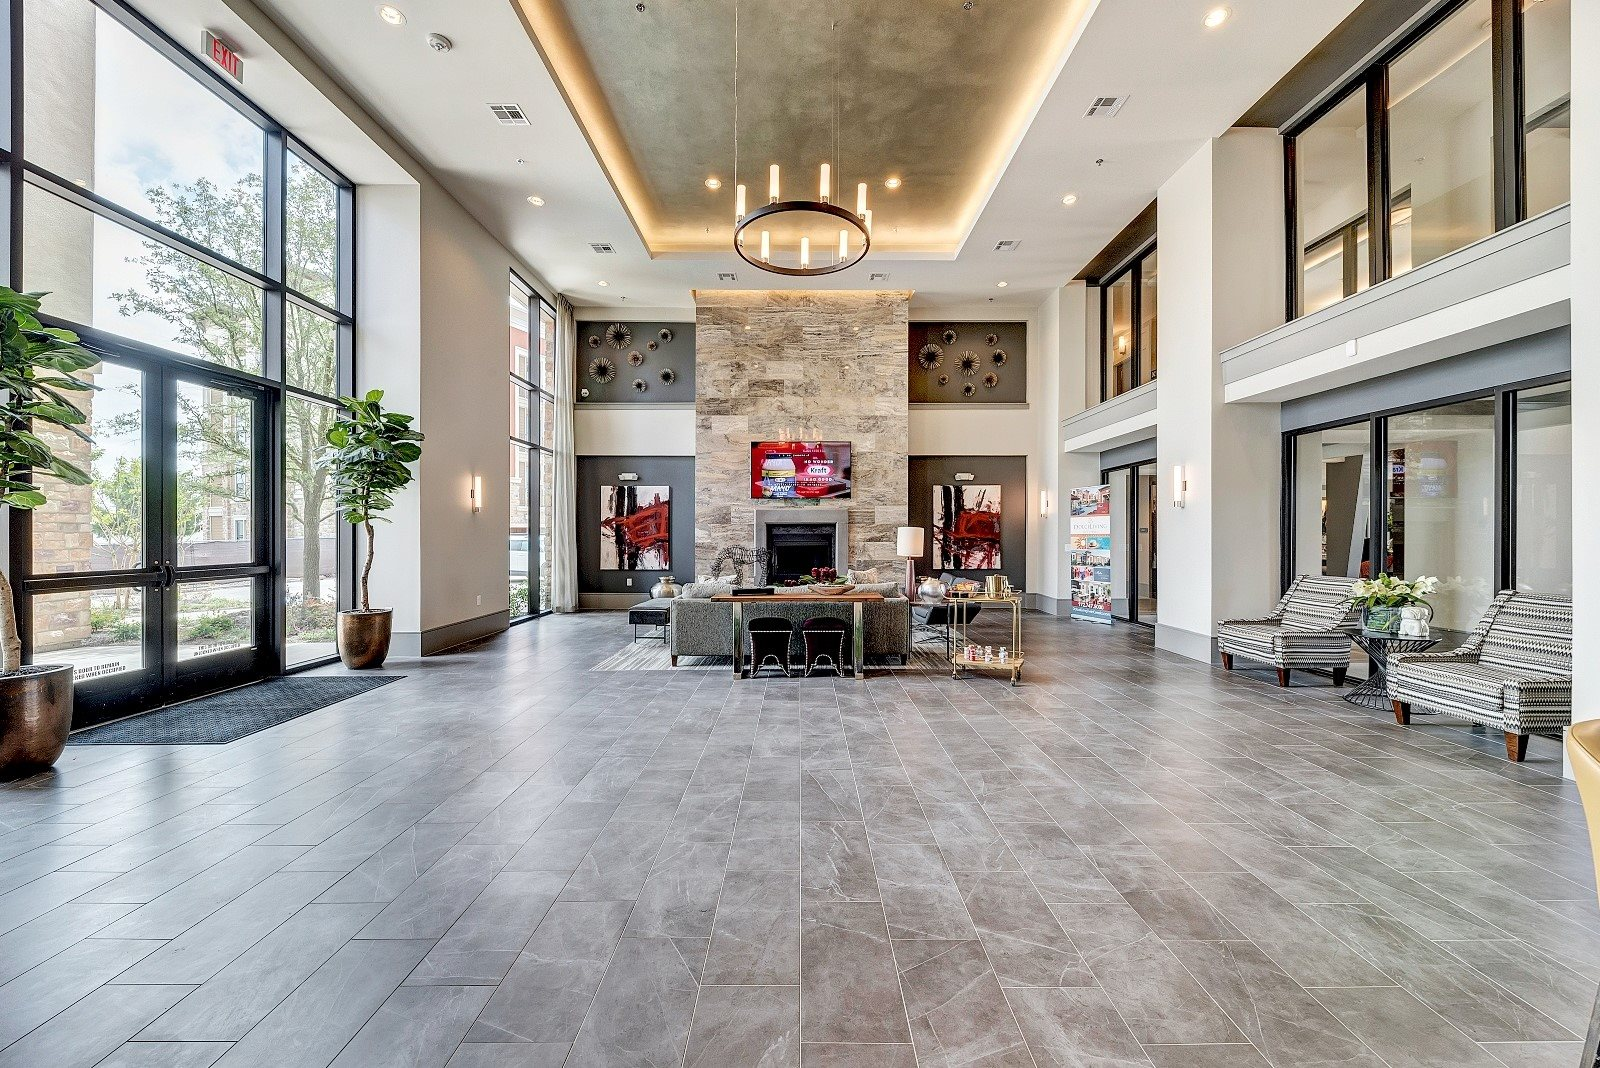 Apartments for rent in Allen TX with a lobby